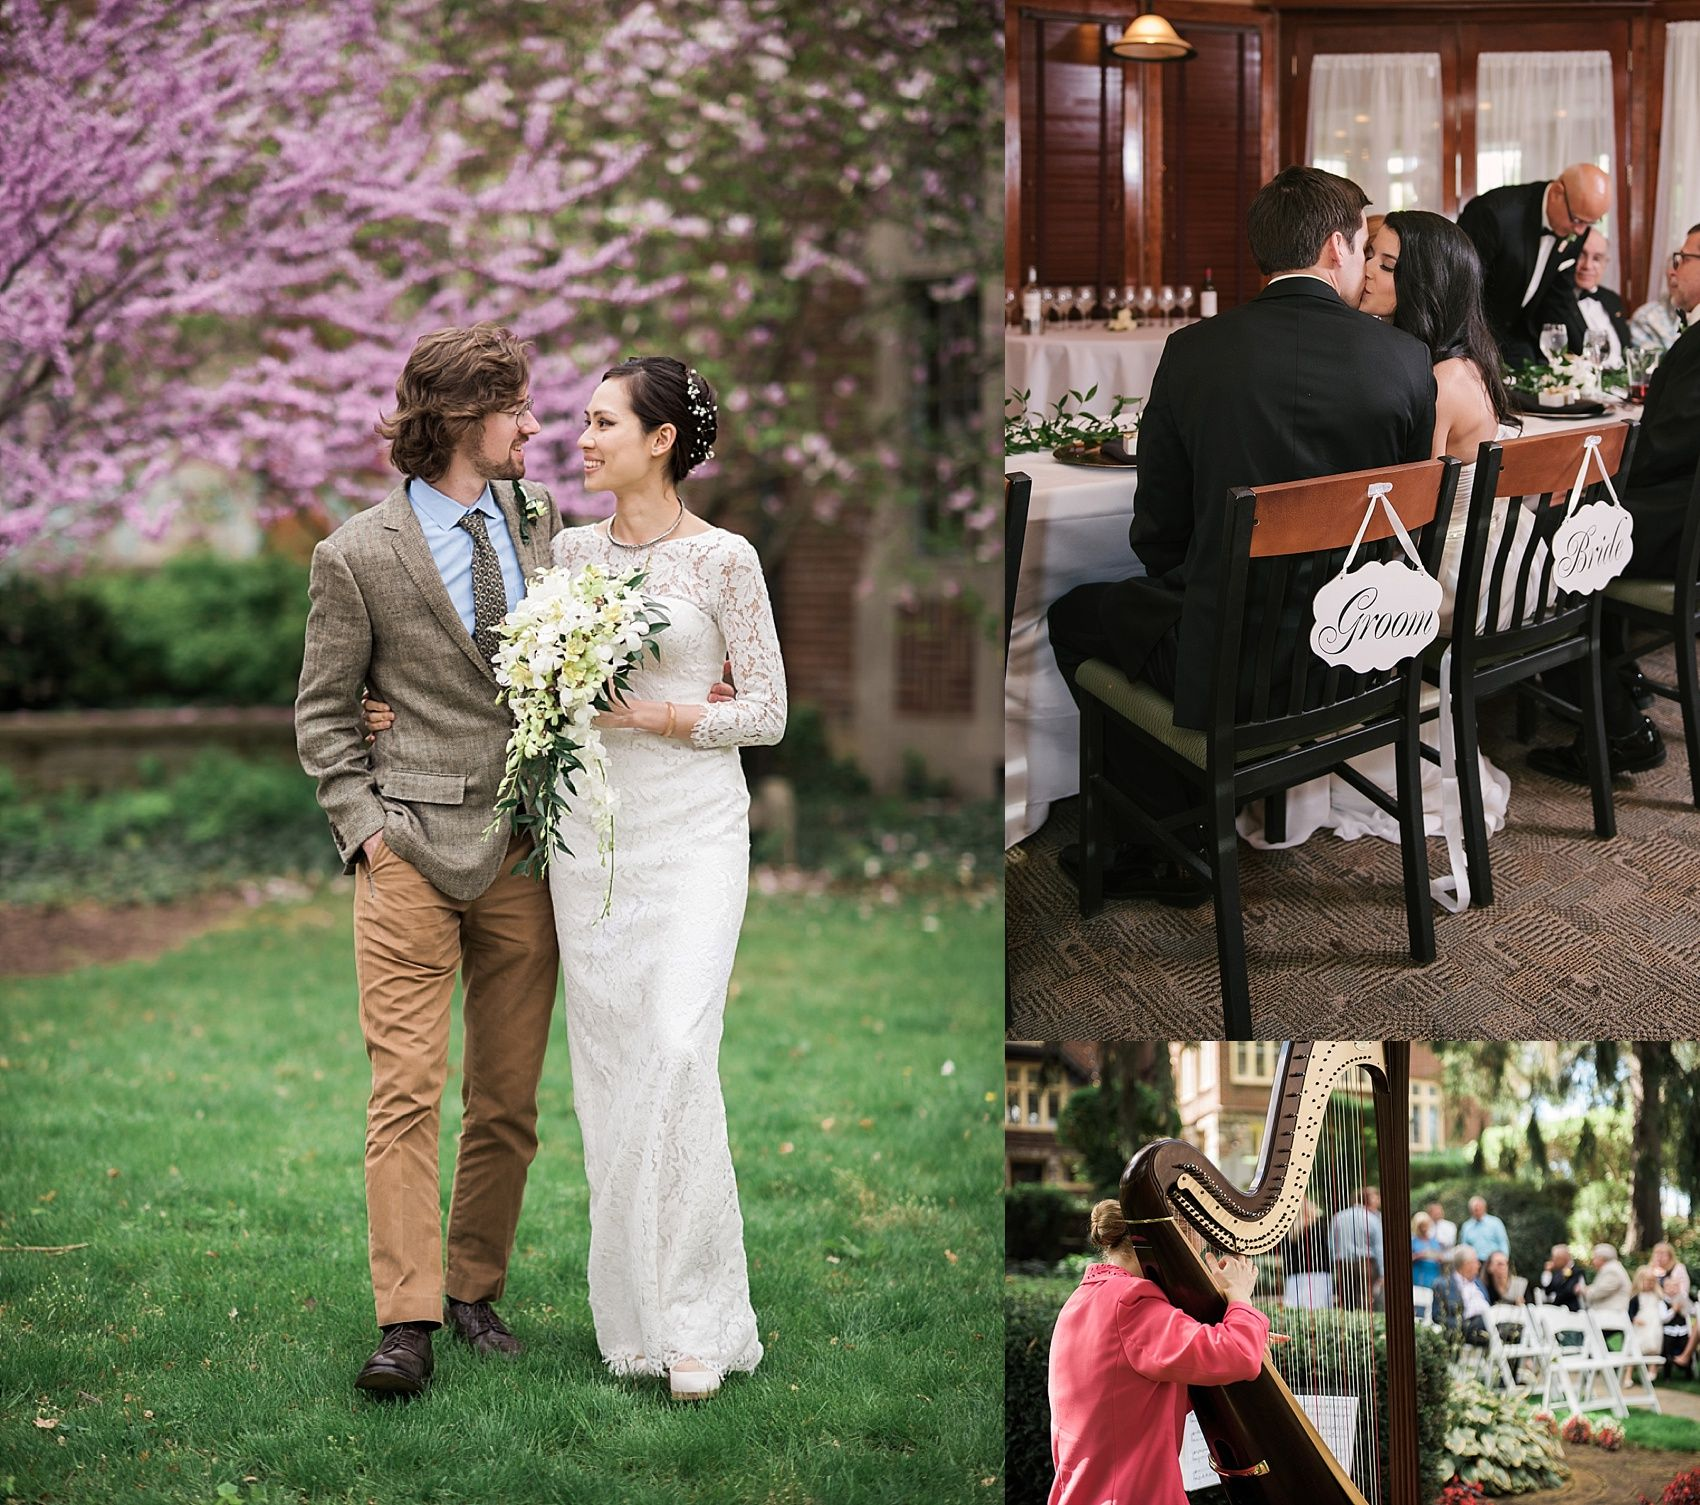 The Five Best Places To Host A Small Intimate Wedding In Lansing Michigan Allie Co Photography Lansing Michigan Wedding Photographers Michigan Wedding Venues Wedding Venues In Virginia Michigan Wedding